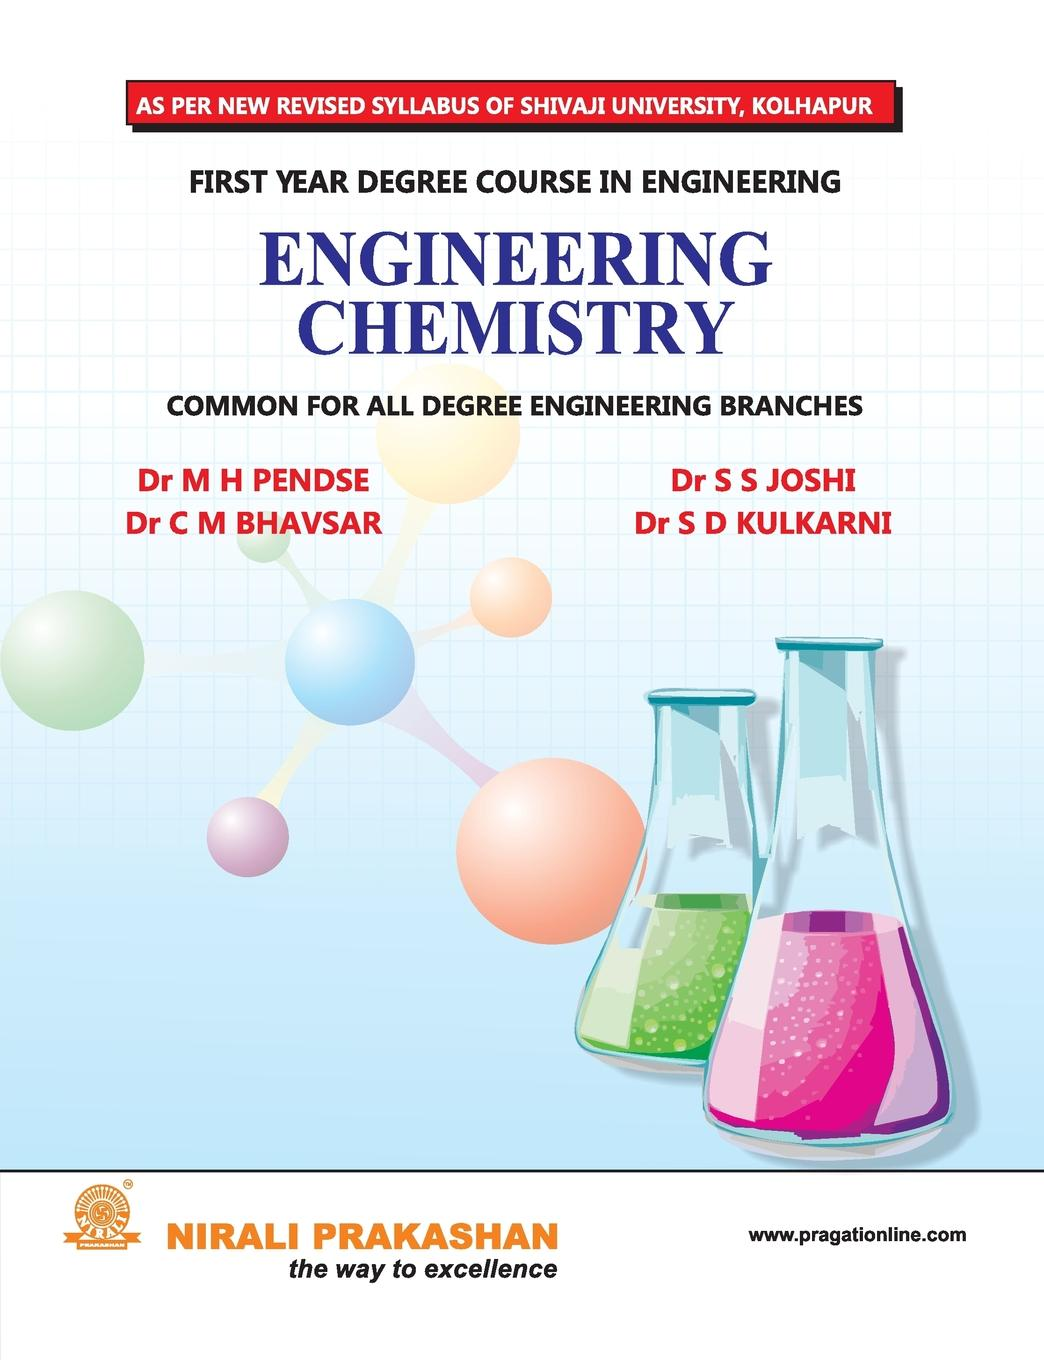 DR S S JOSHI, DR M H PENDSE, DR C M BHAVSAR ENGINEERING CHEMISTRY kenneth overway s environmental chemistry an analytical approach